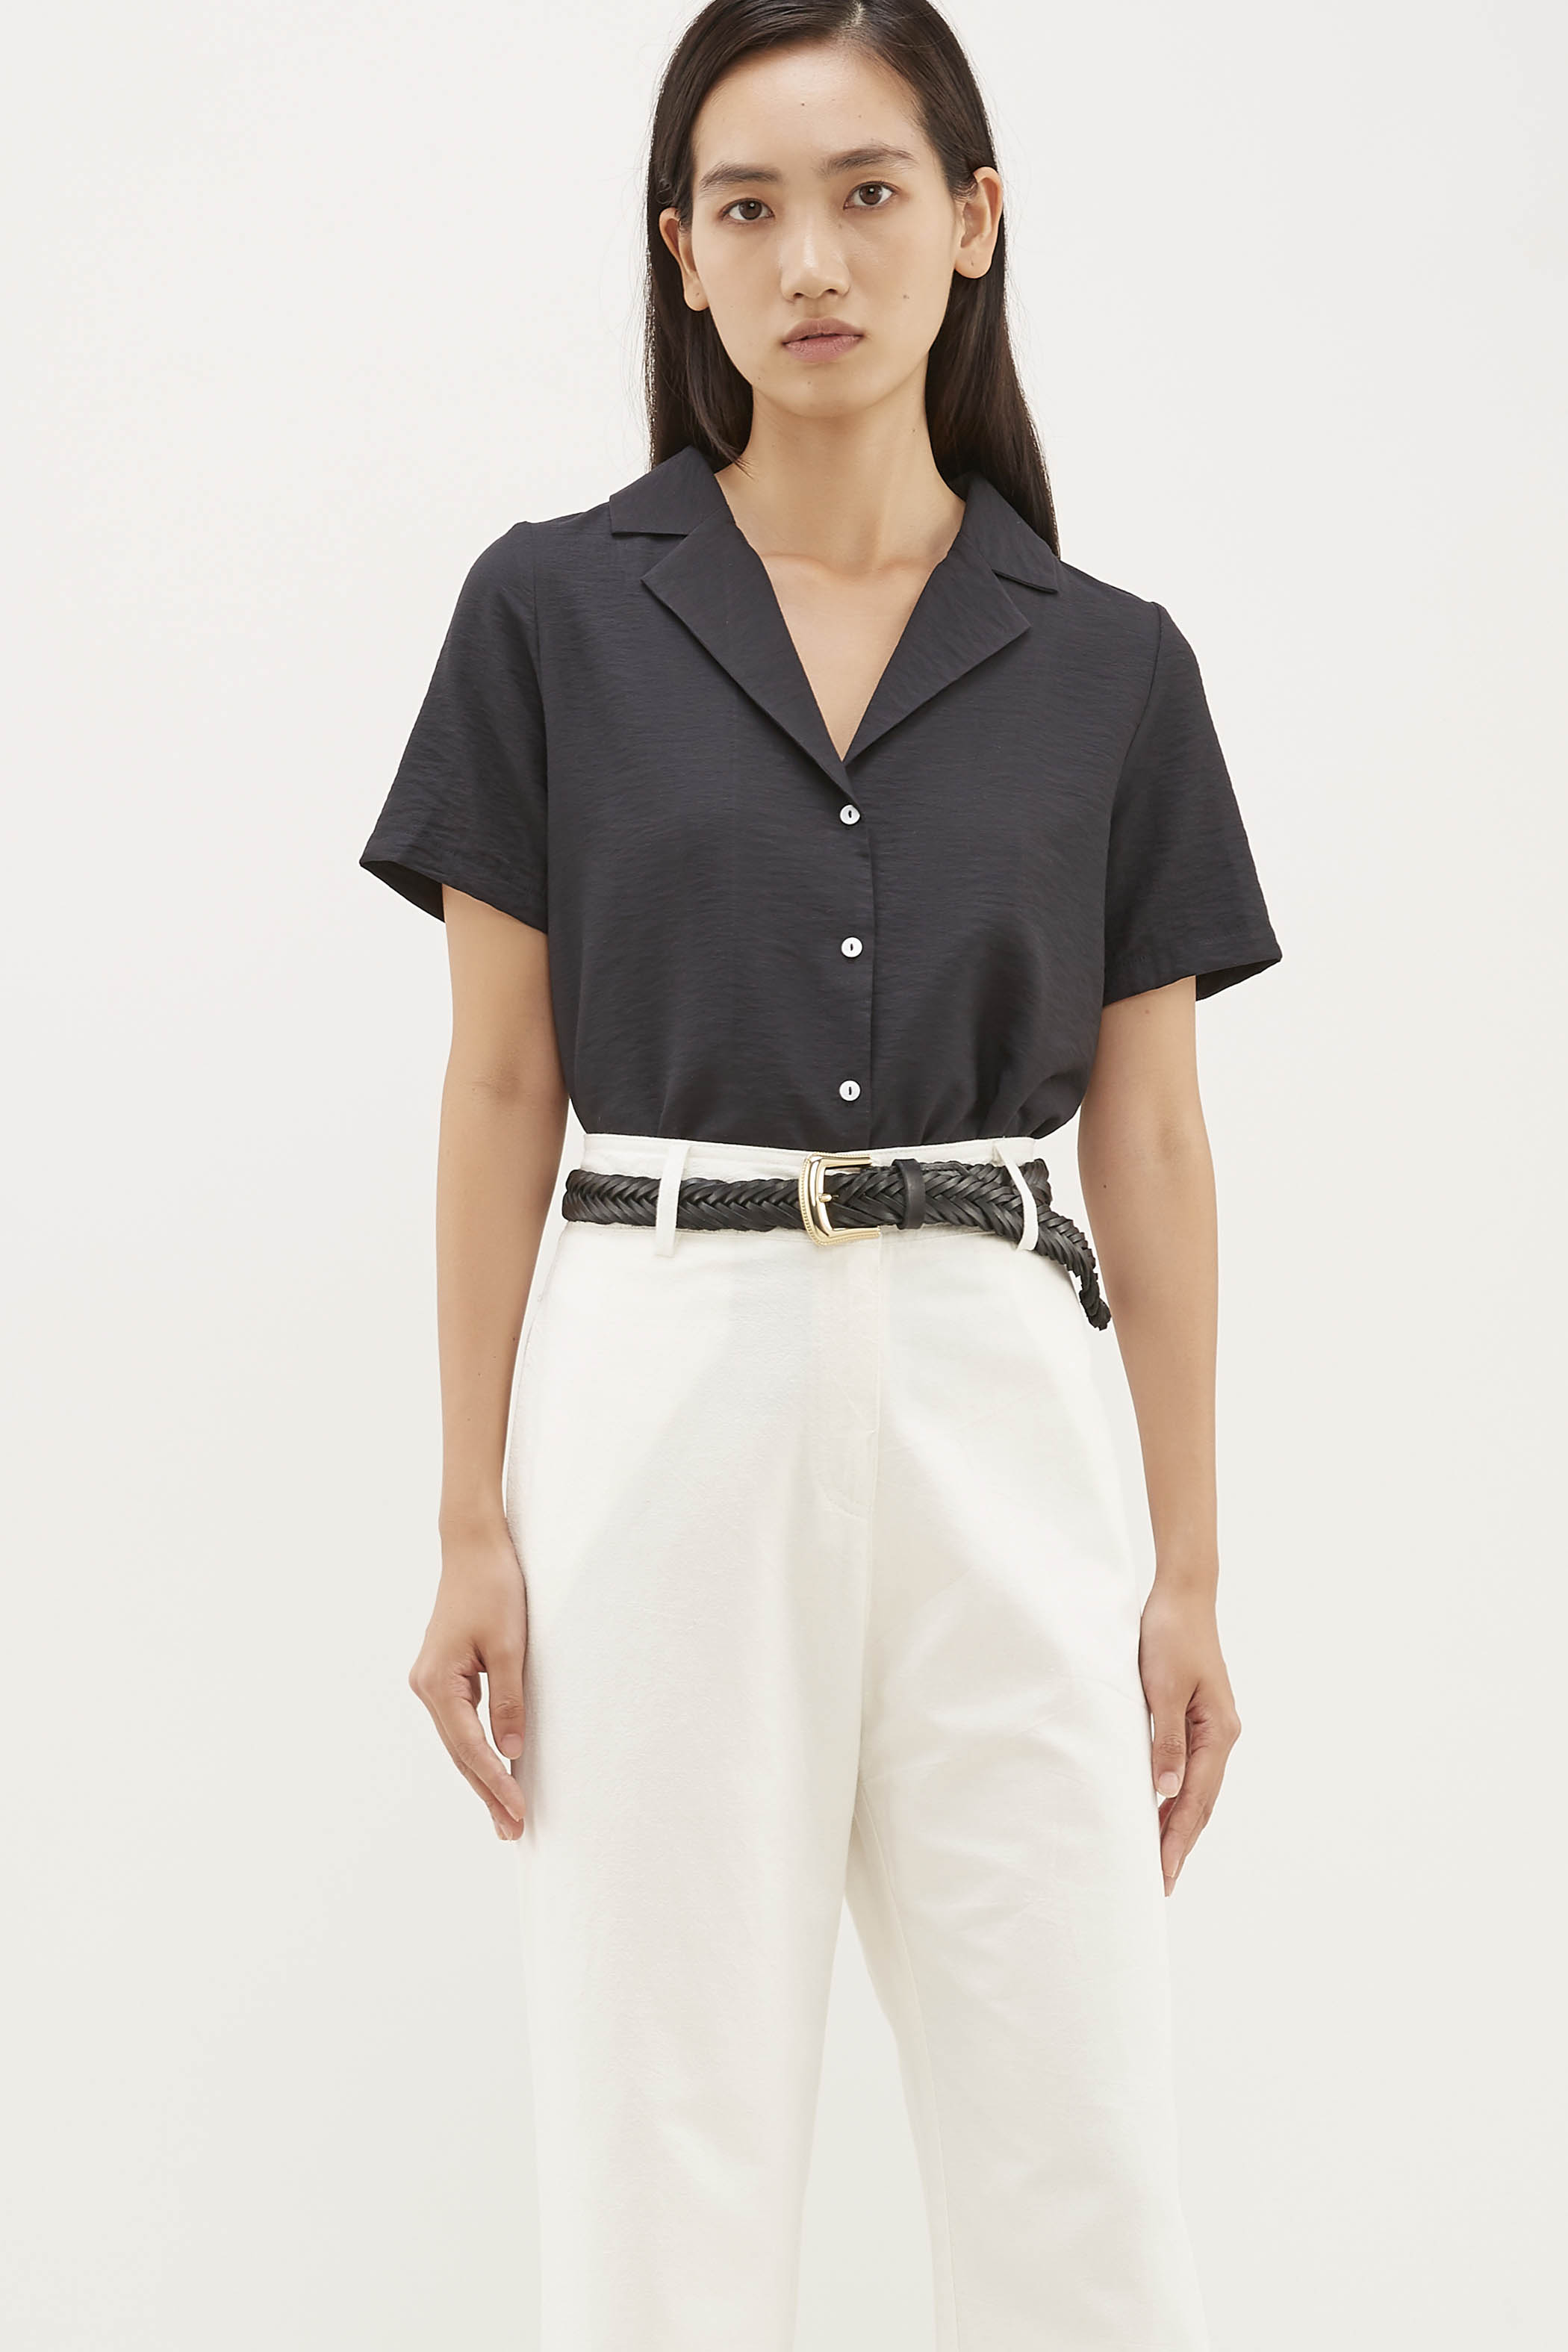 Wrey Collared Blouse